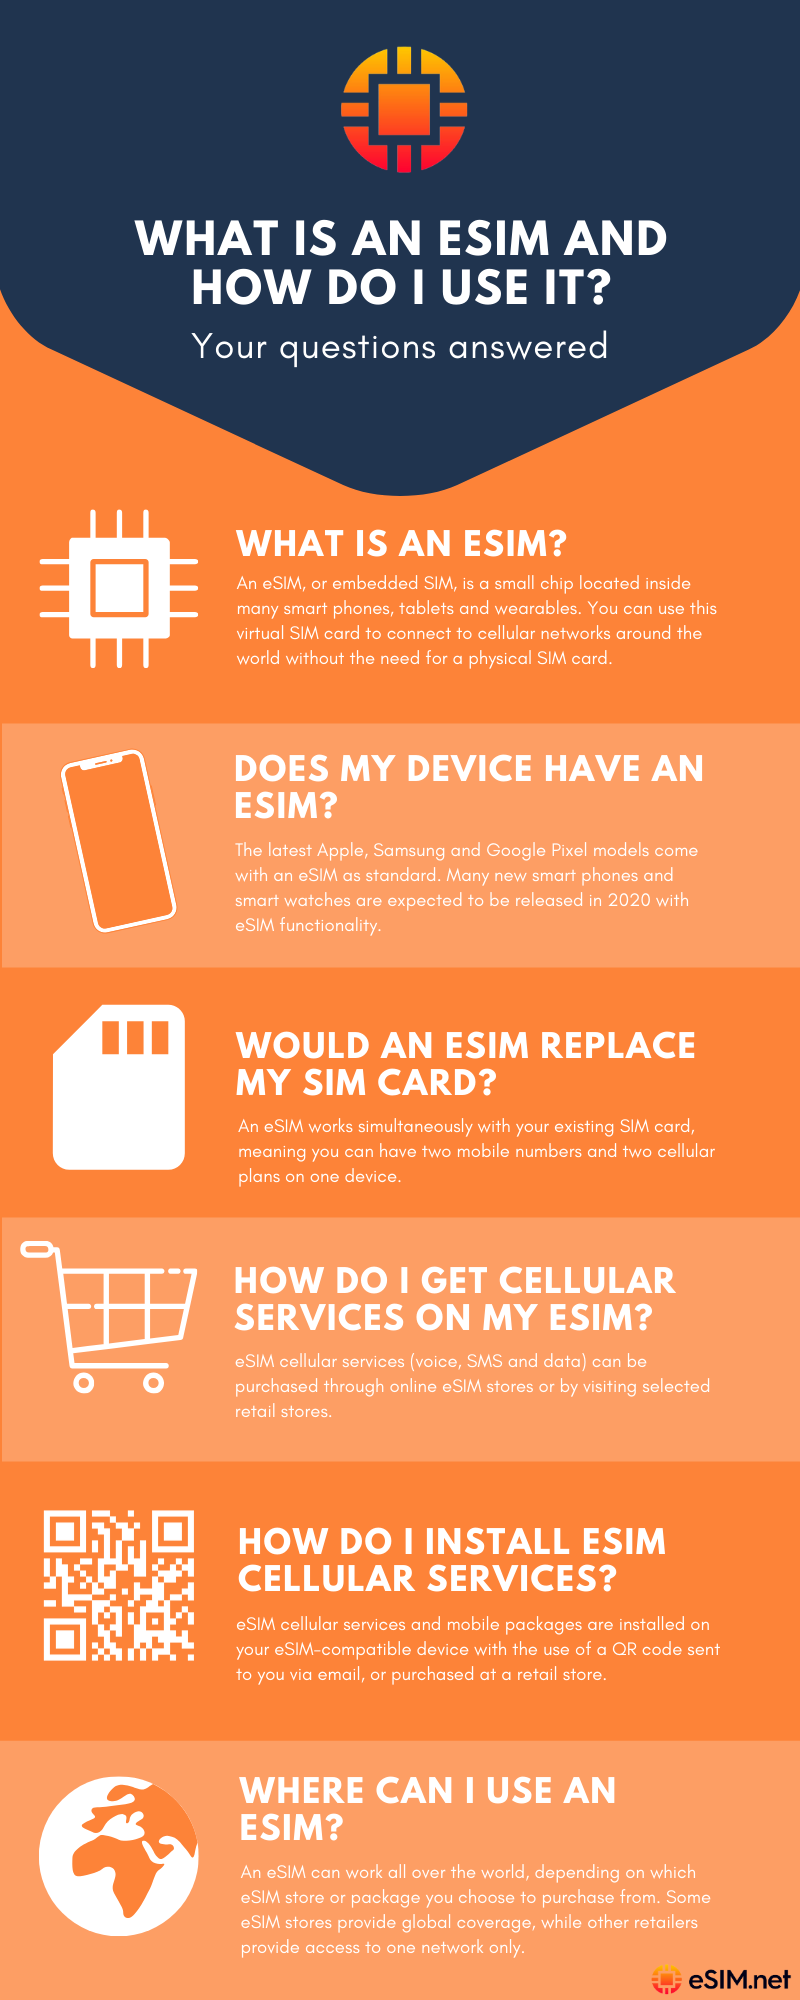 What is an eSIM and how does it work? #infographic